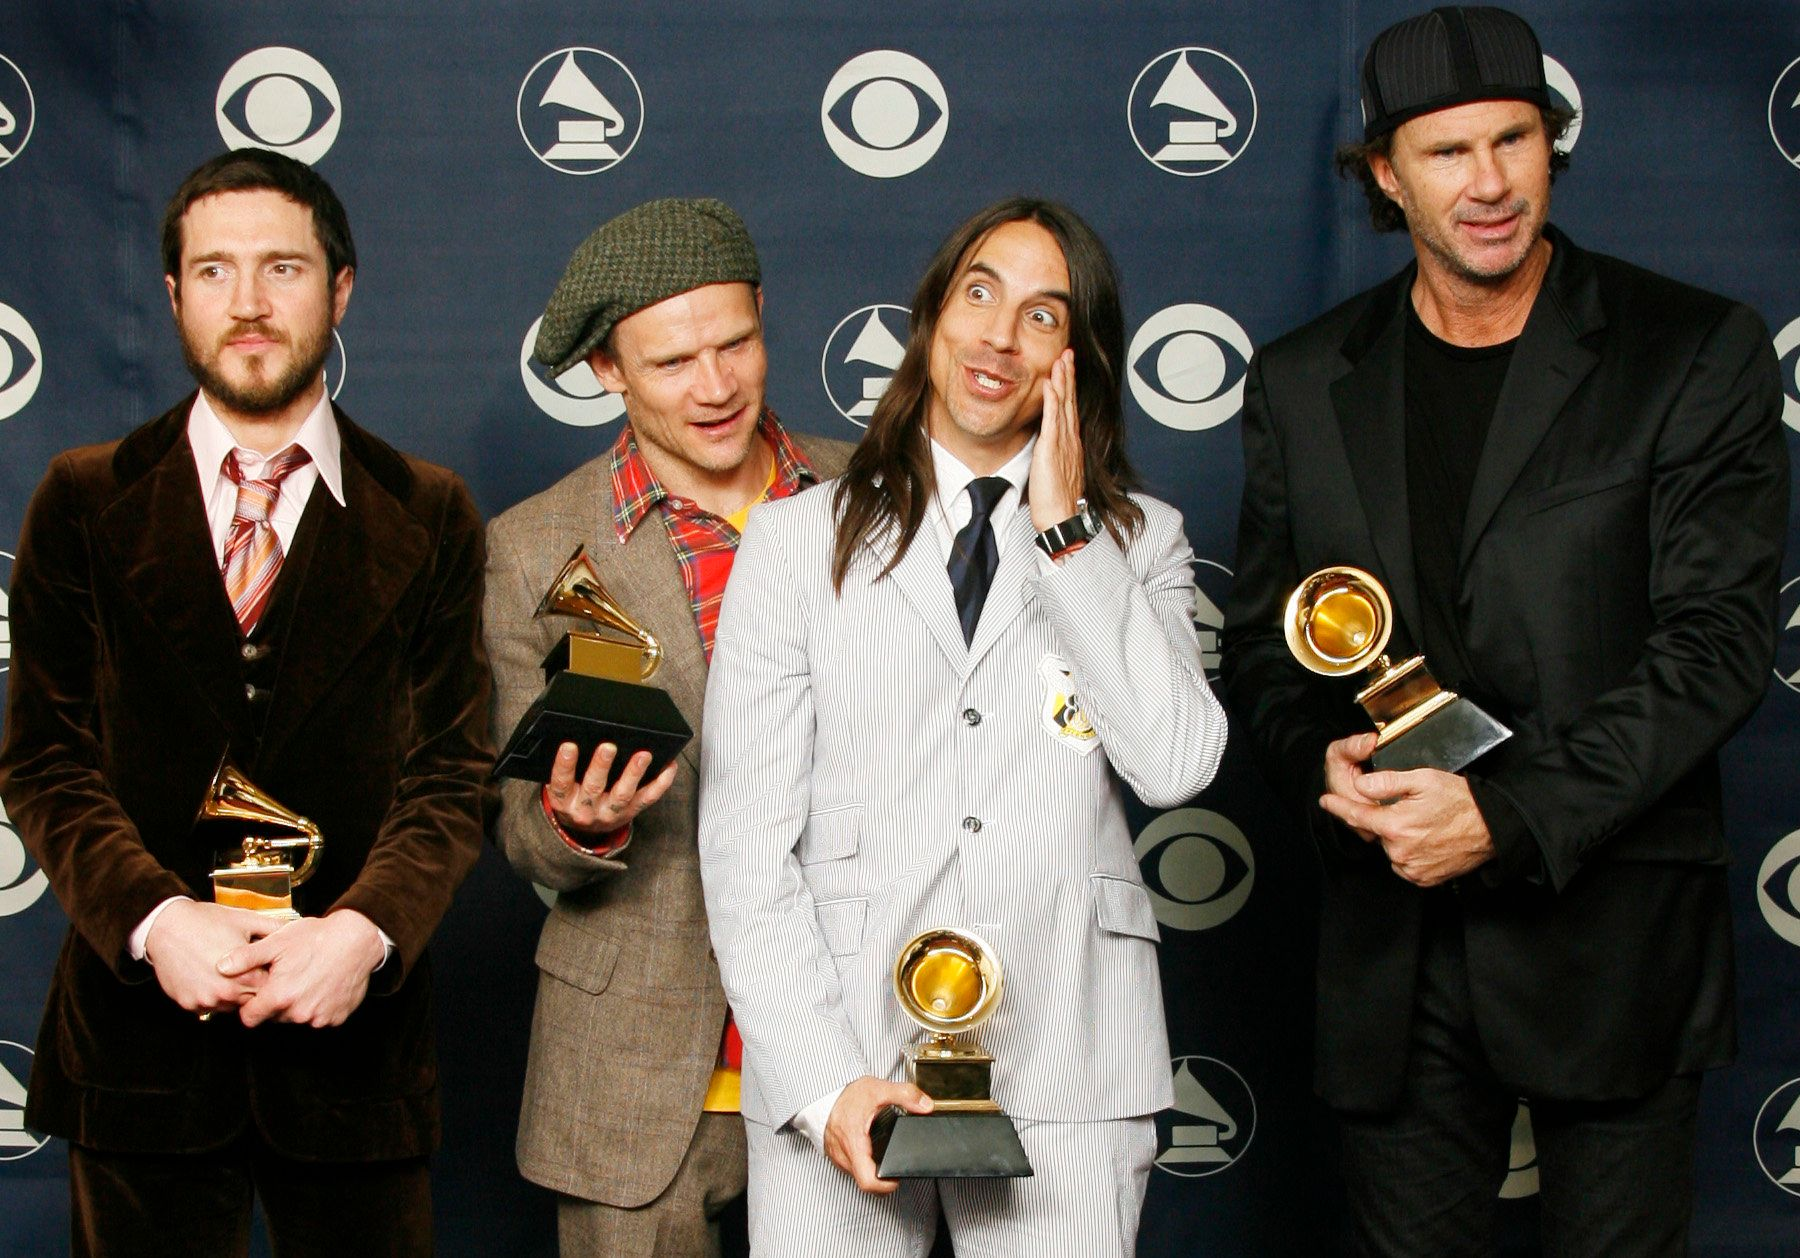 The Red Hot Chili Peppers won Grammys for best rock song, best rock album and best rock performance in 2007.